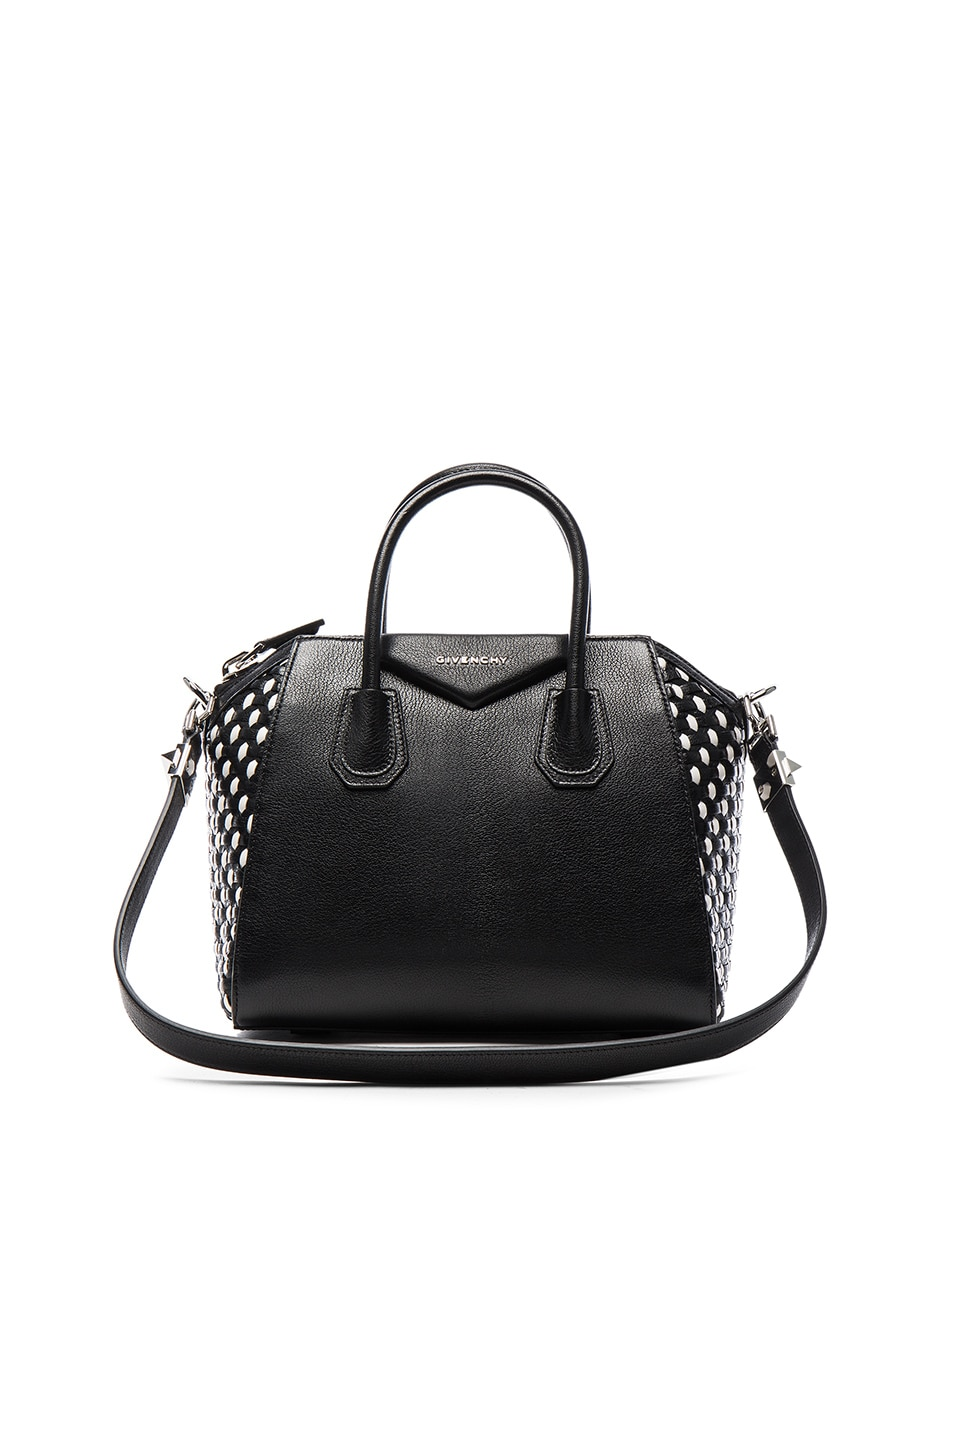 Image 1 of GIVENCHY Small Woven Leather Antigona in Black & White